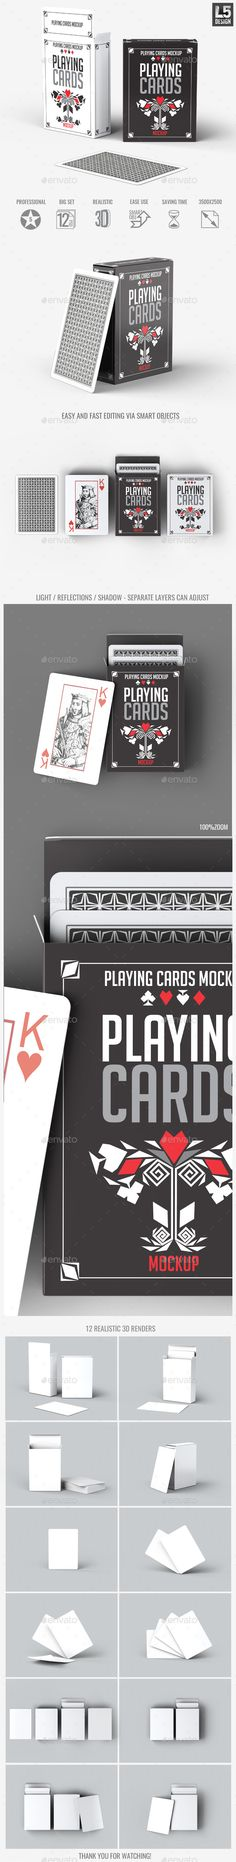 Playing Cards MockUp — Photoshop PSD #game #box • Available here → https://graphicriver.net/item/playing-cards-mockup/15963077?ref=pxcr